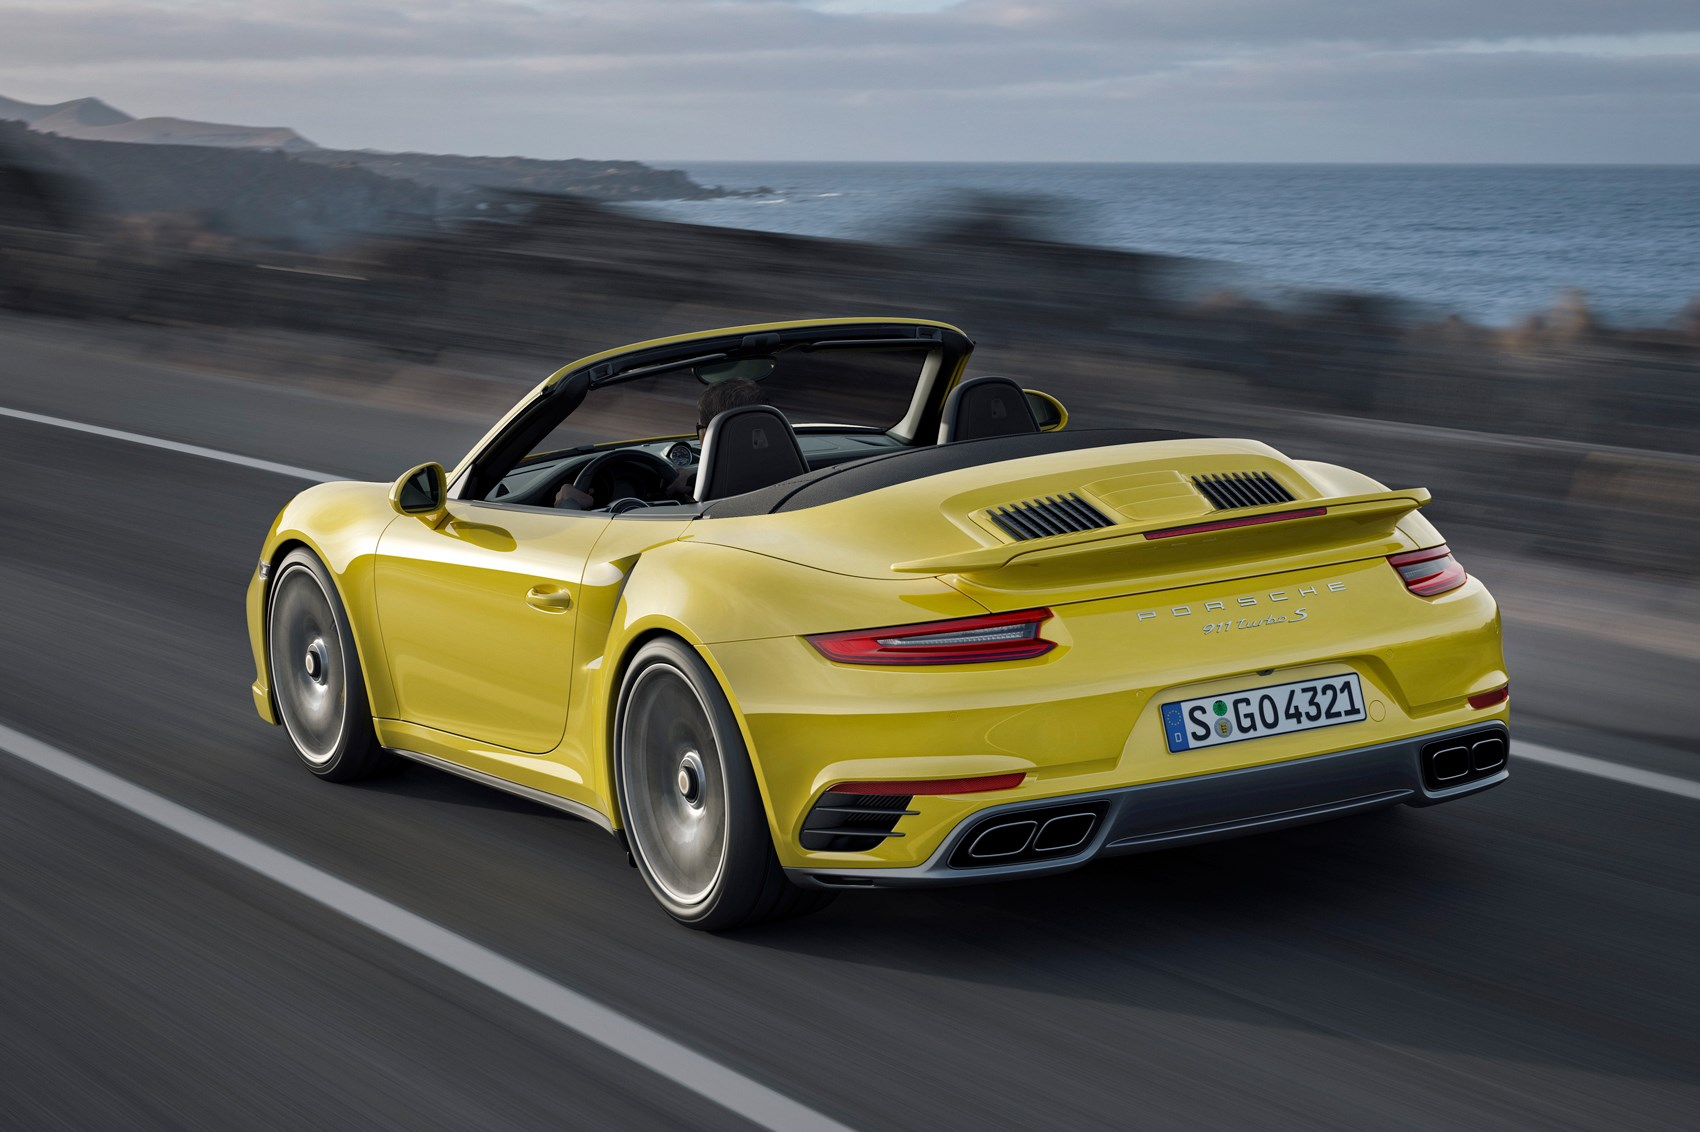 Renewed Porsche 911 Turbo for 2016 the fastest 911 gets faster